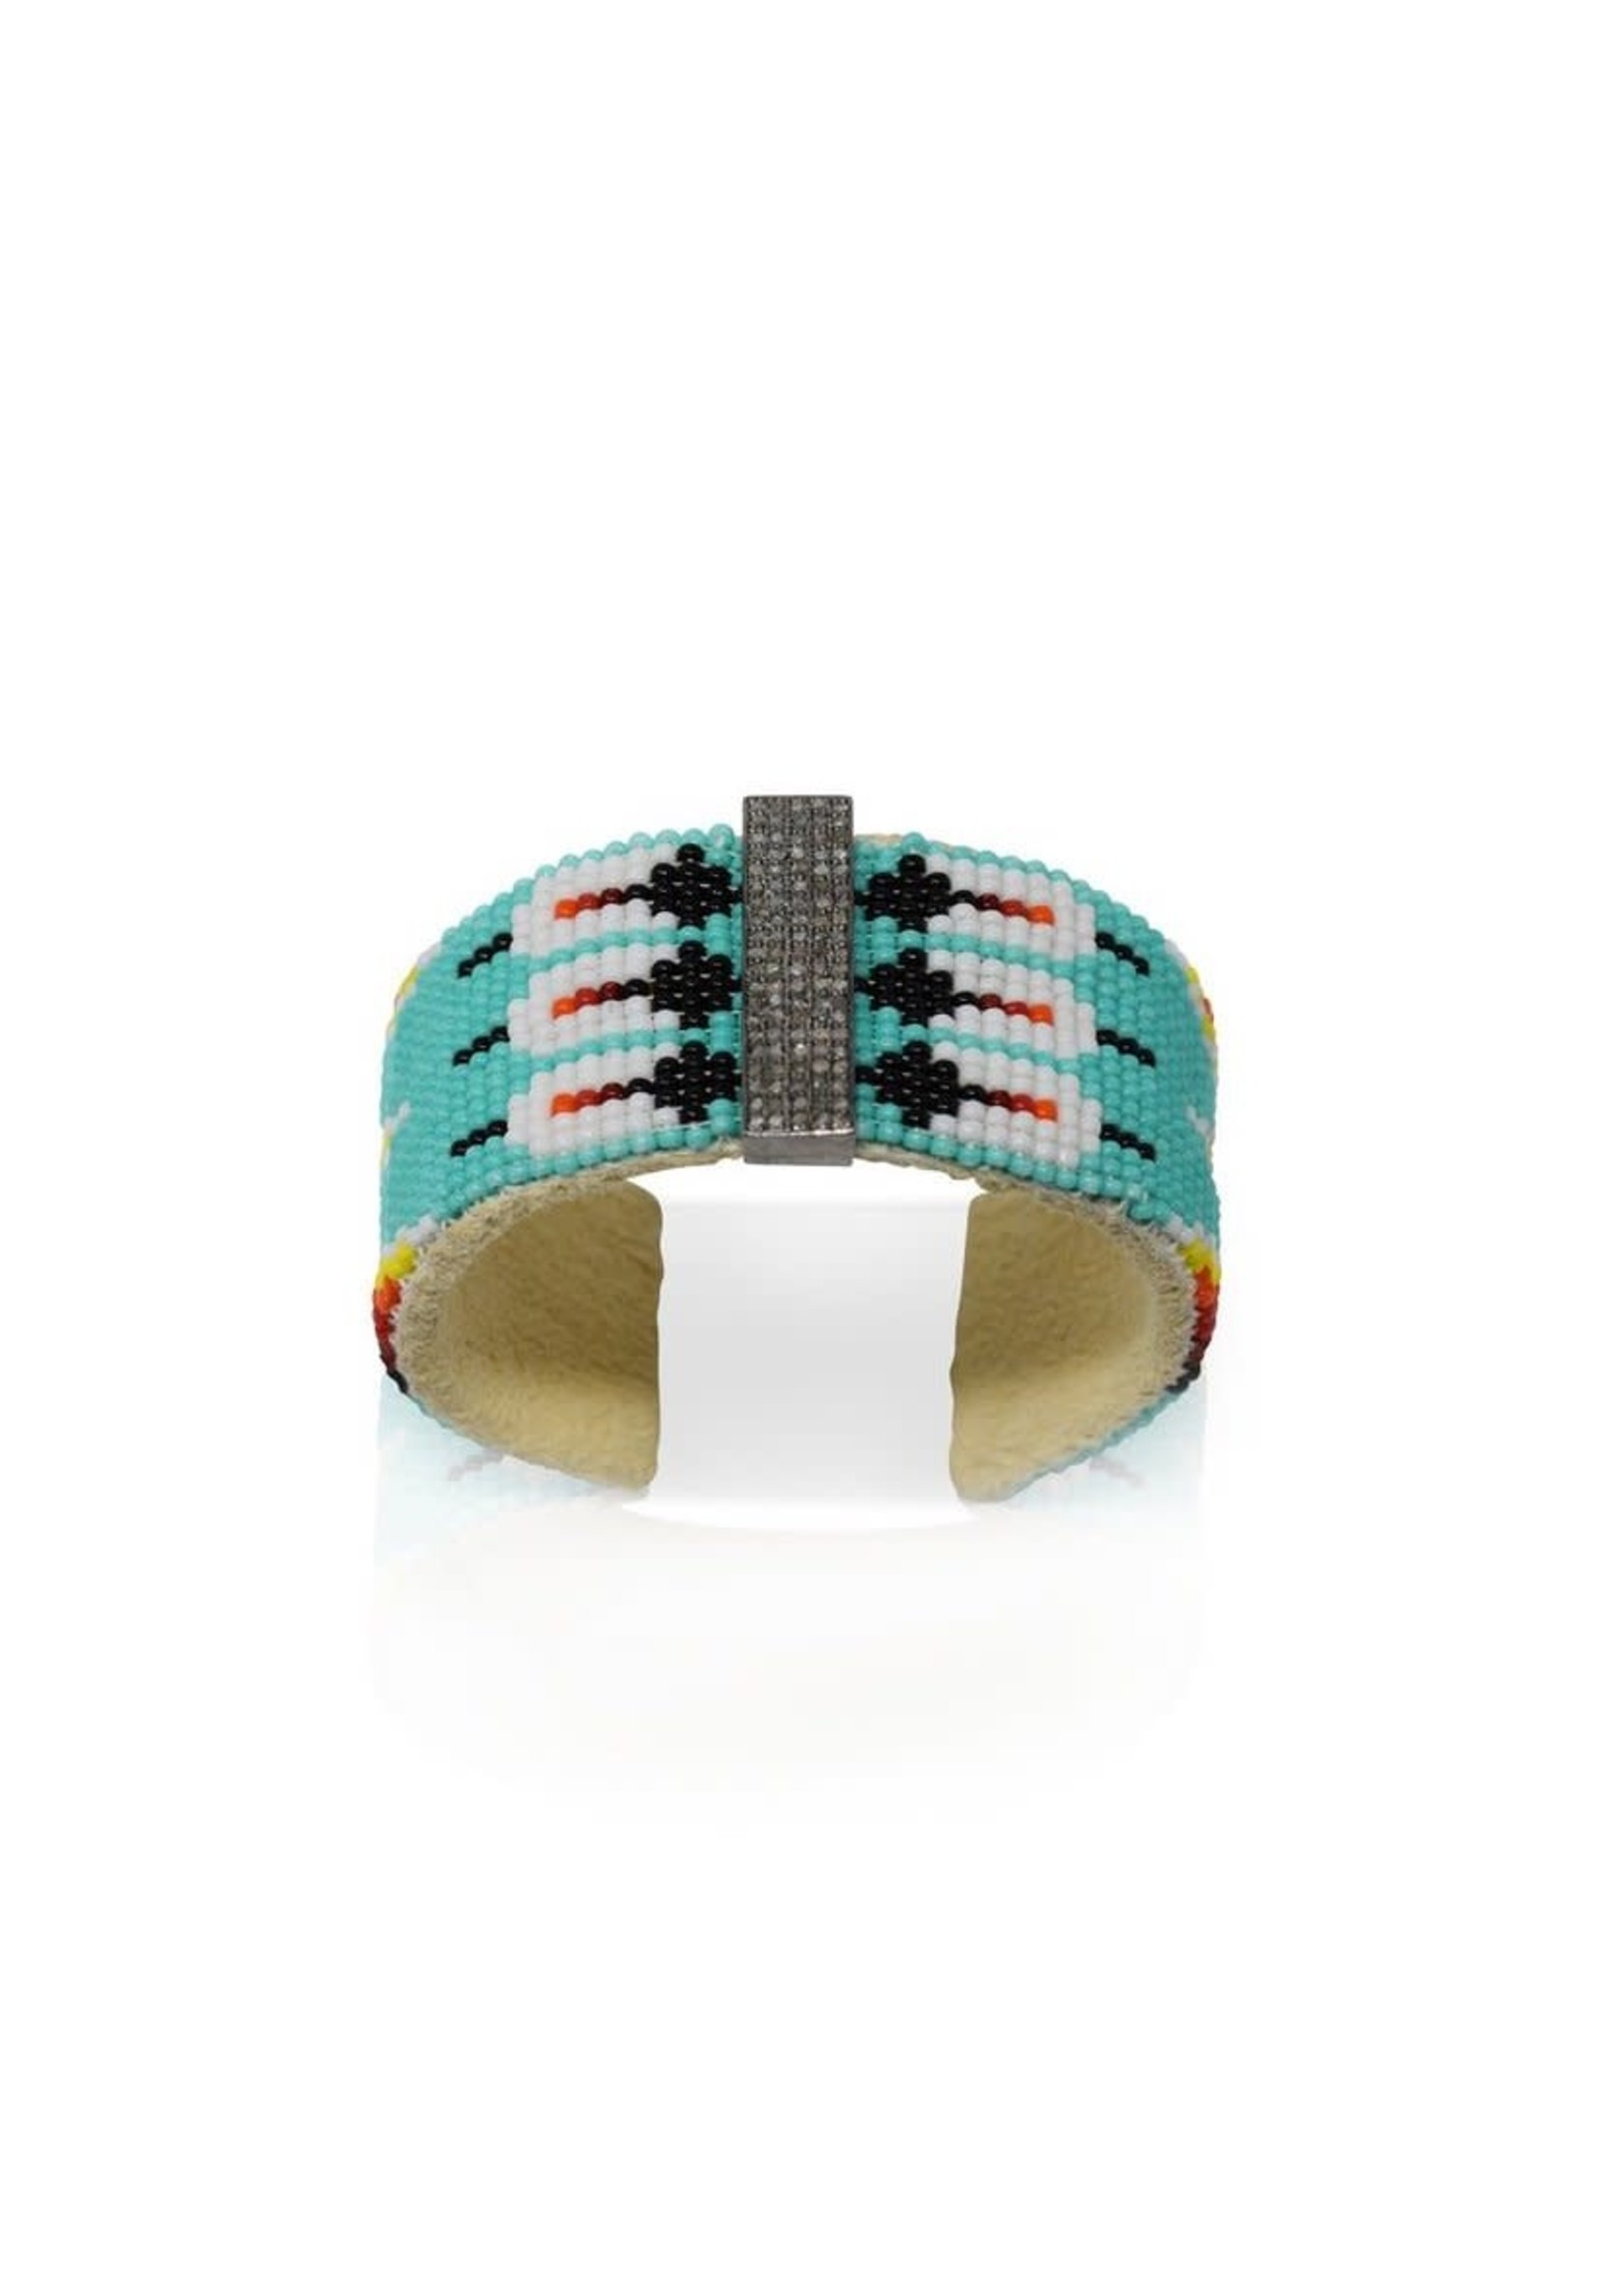 S. Carter Designs Large Teal Beaded Cuff